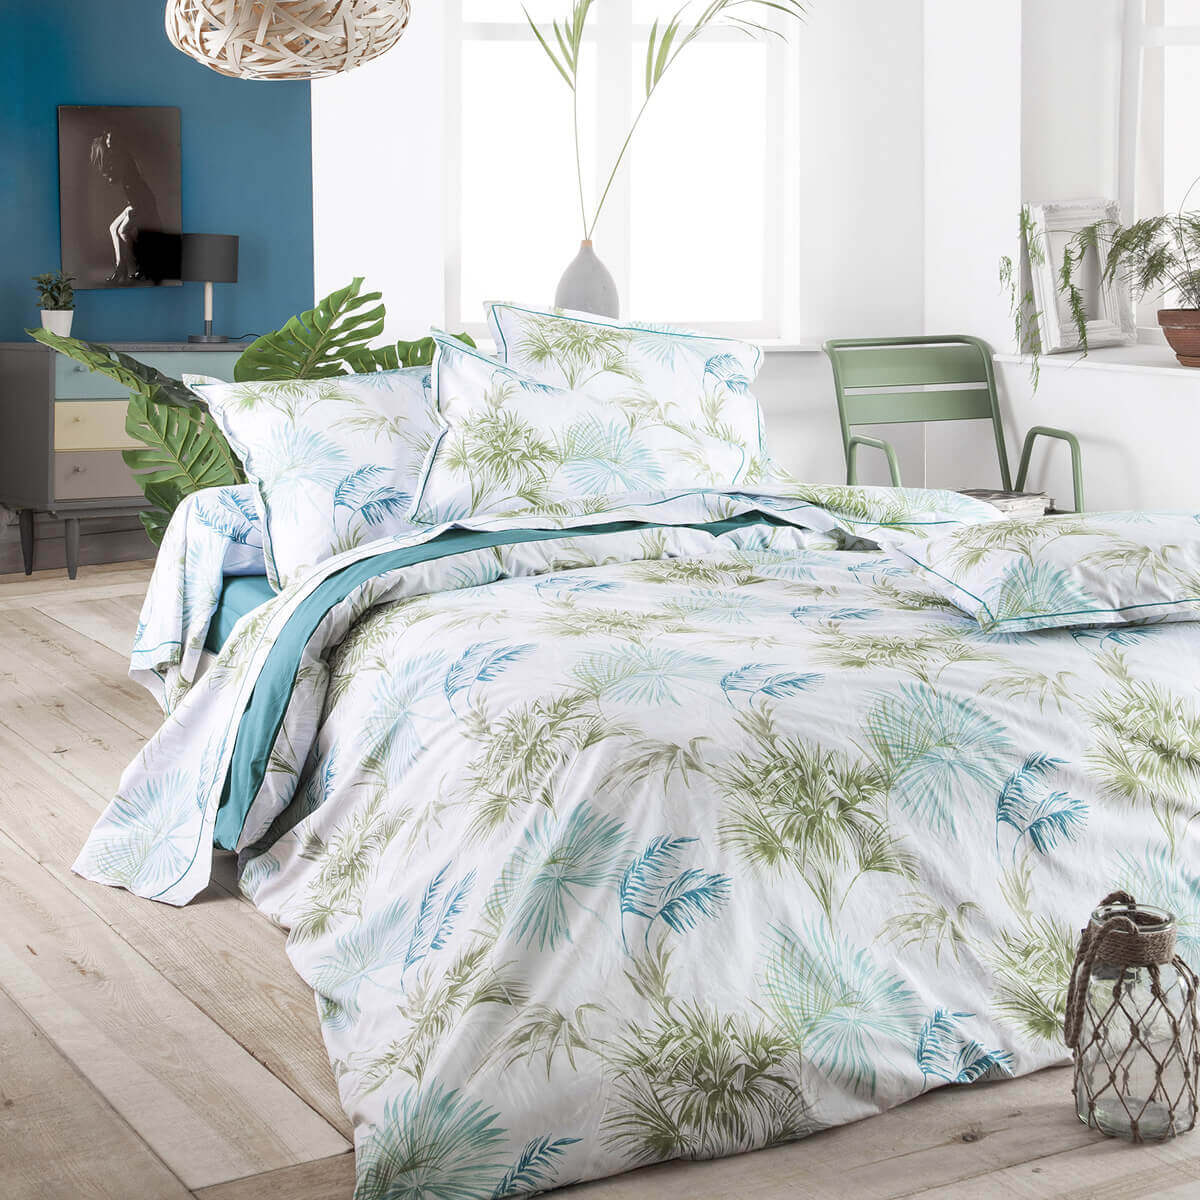 drap de lit percale tropical meraude linge de lit. Black Bedroom Furniture Sets. Home Design Ideas